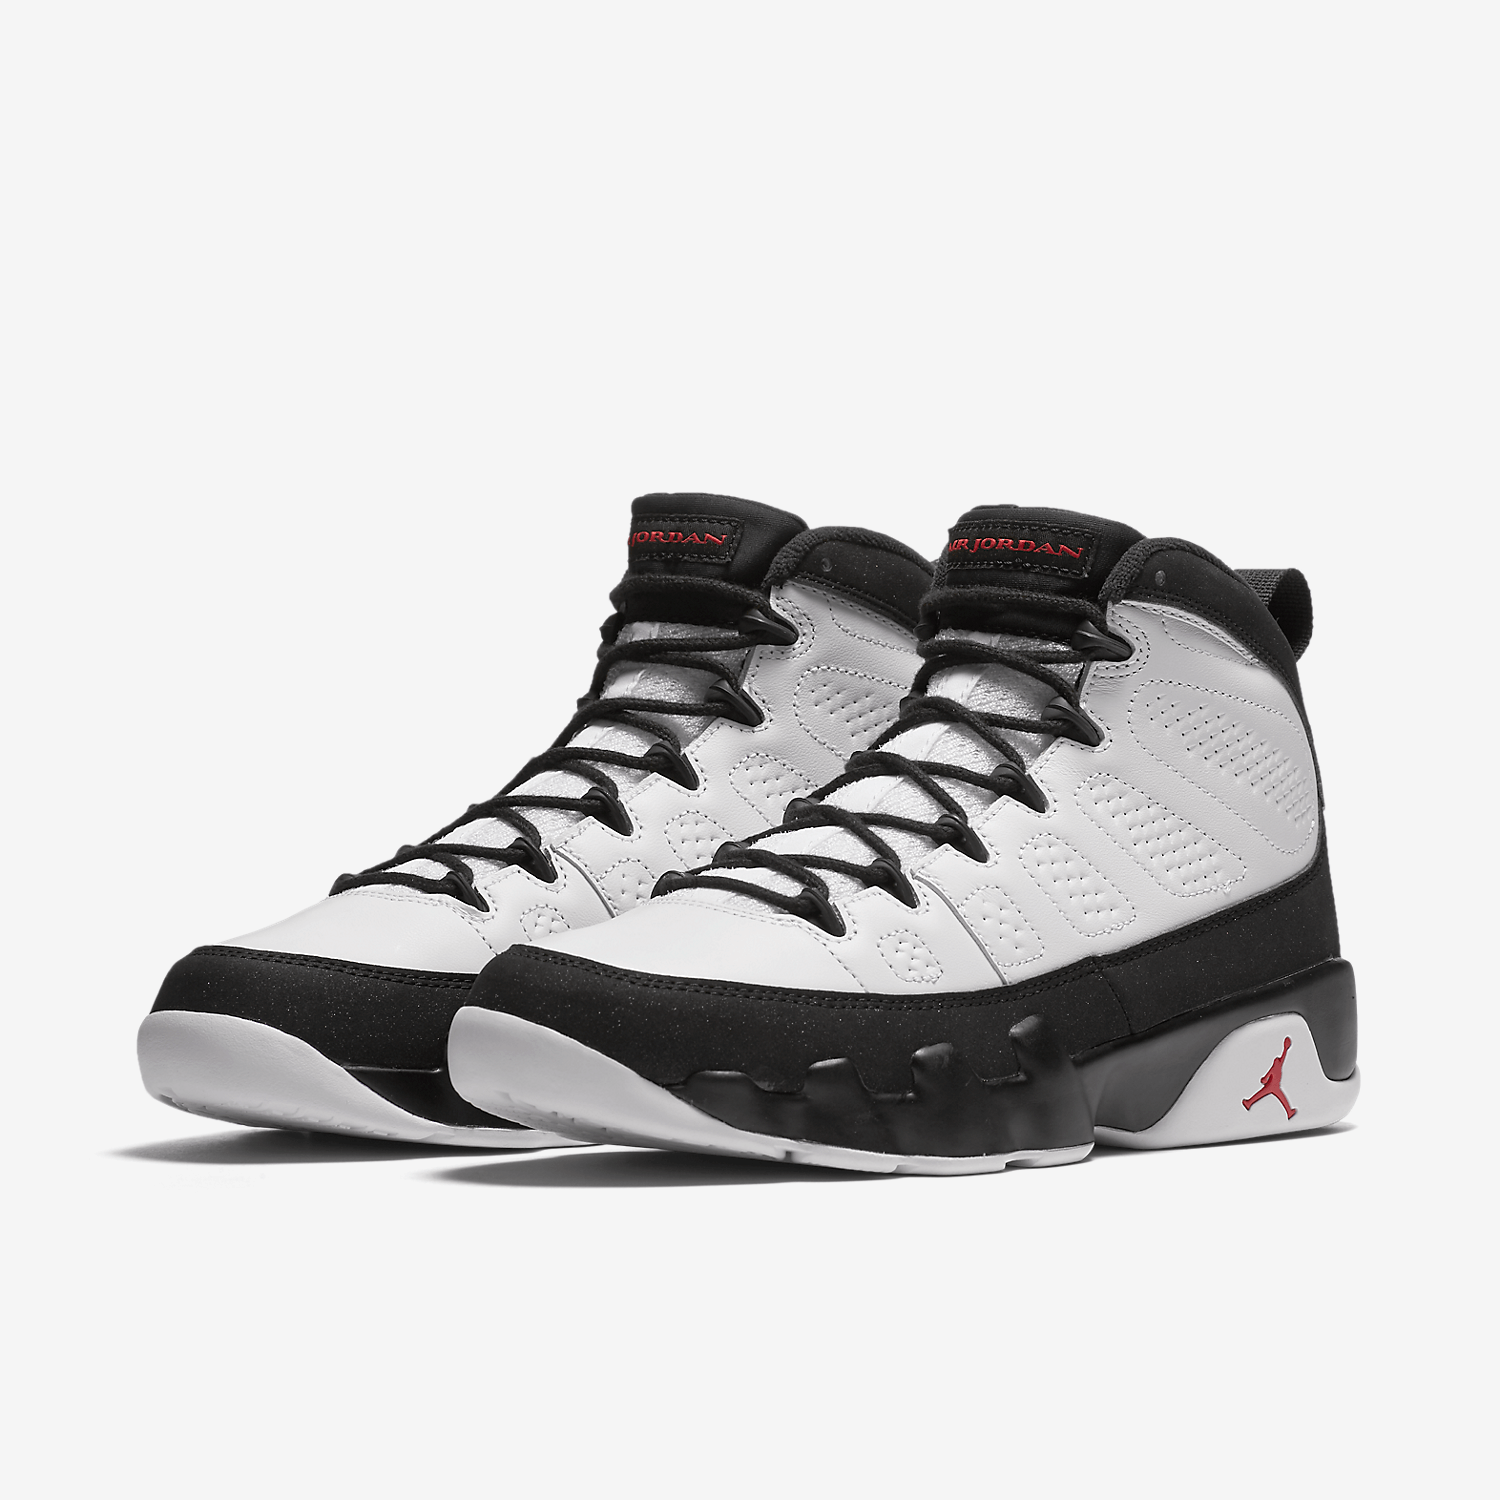 air-jordan-9-ix-og-space-jam-302370-112-1